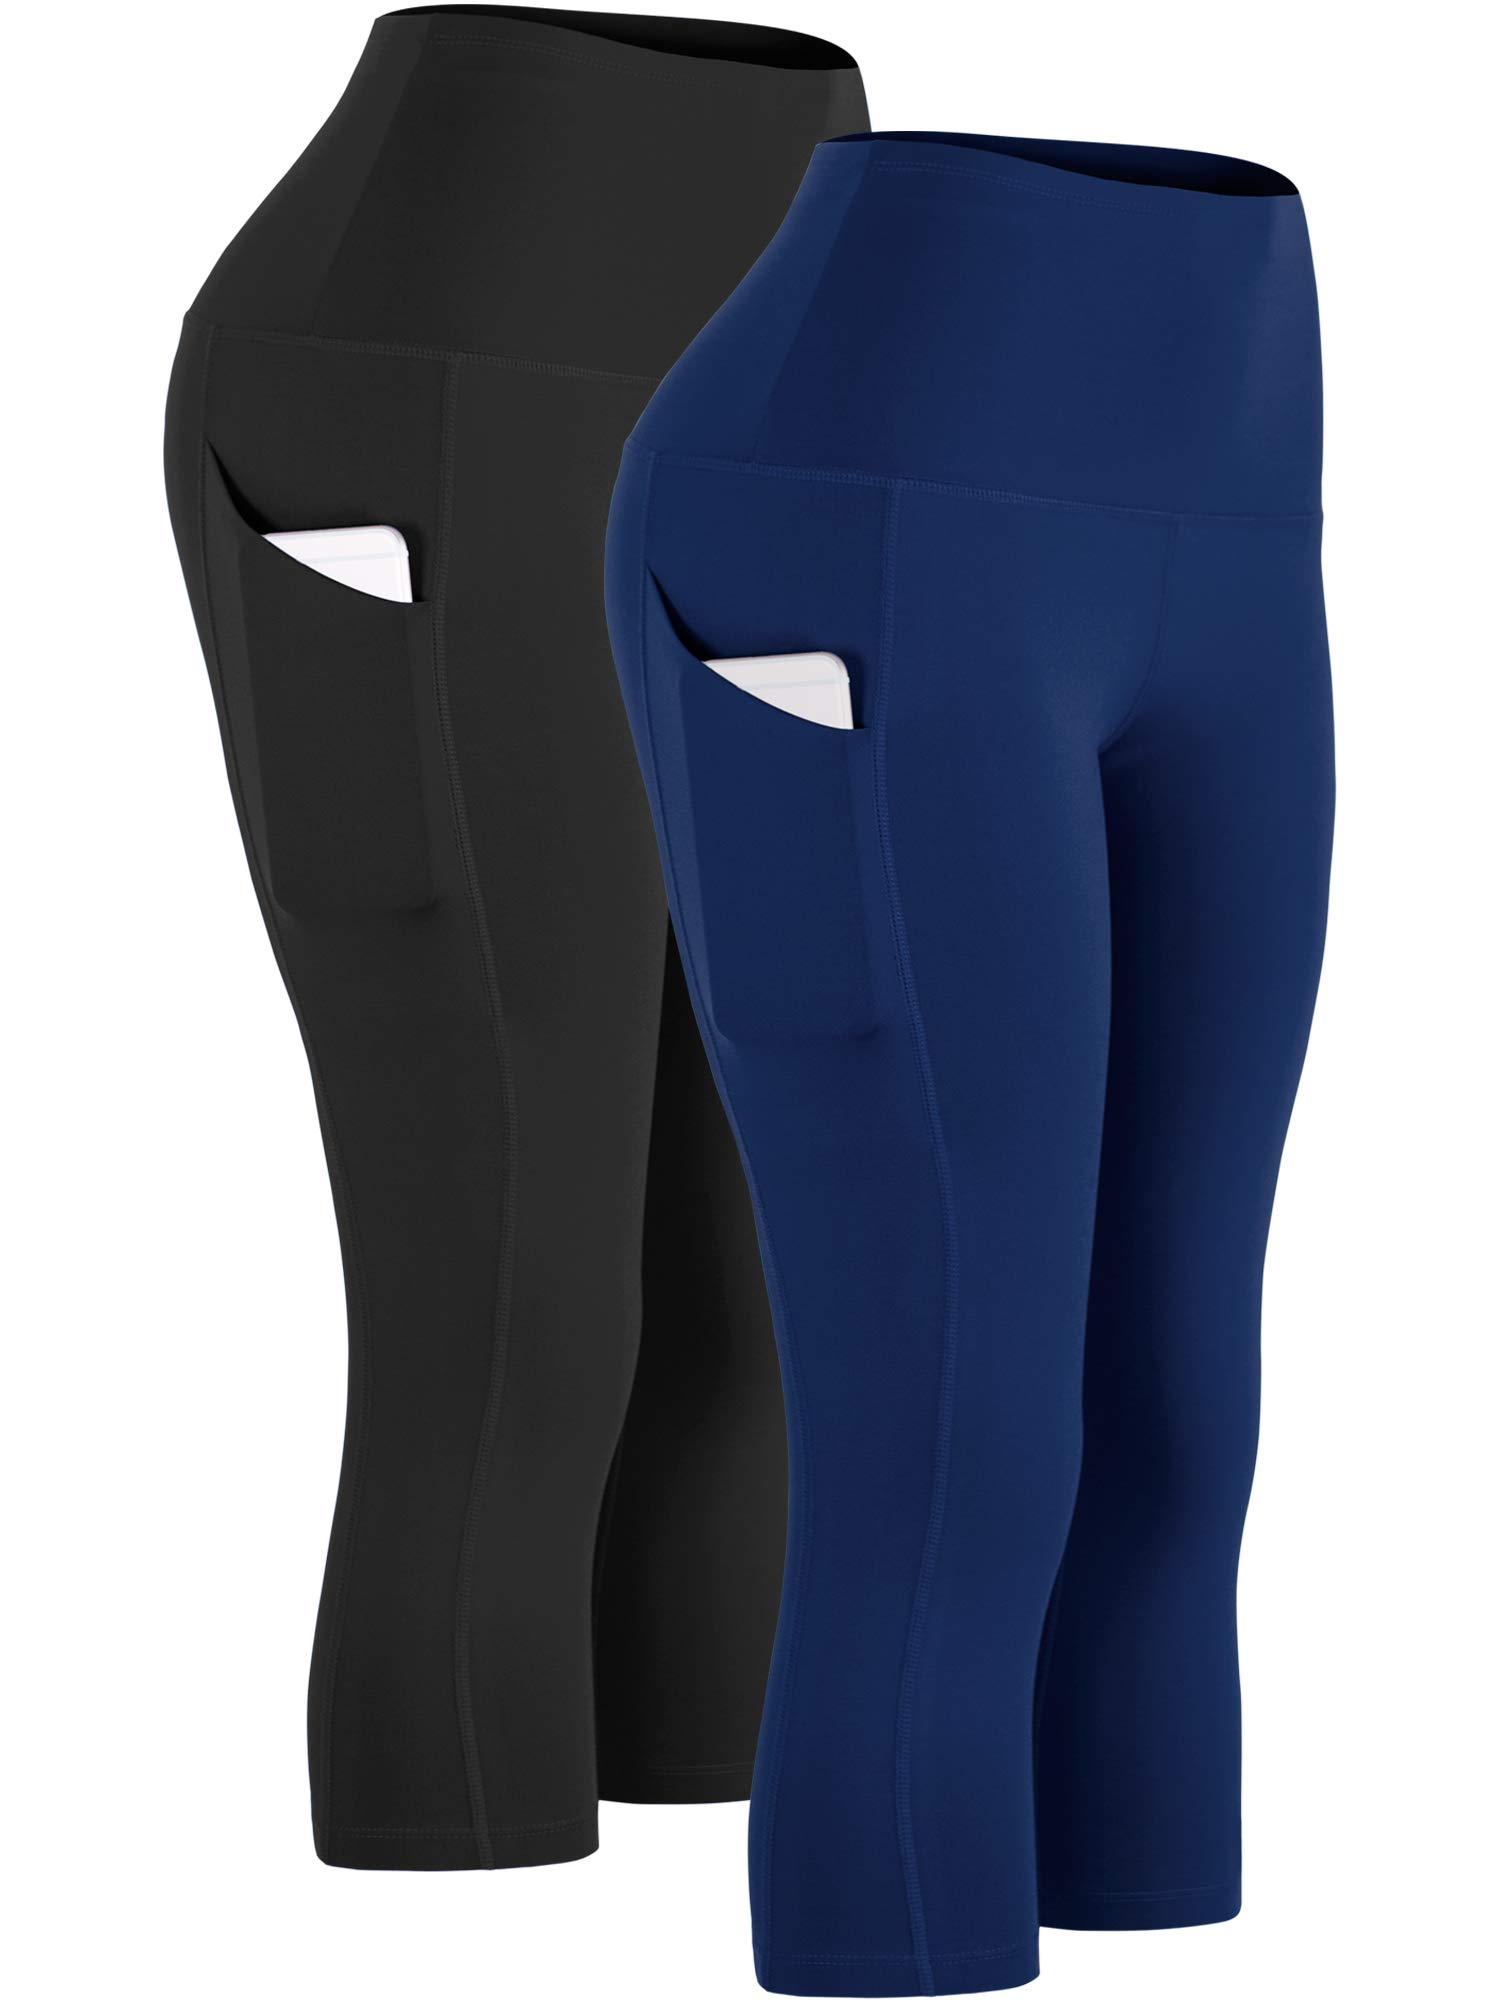 Cadmus Womens High Waist Workout Legging Capris for Yoga w Side Pockets,1109,Black & Navy Blue,Large by Cadmus